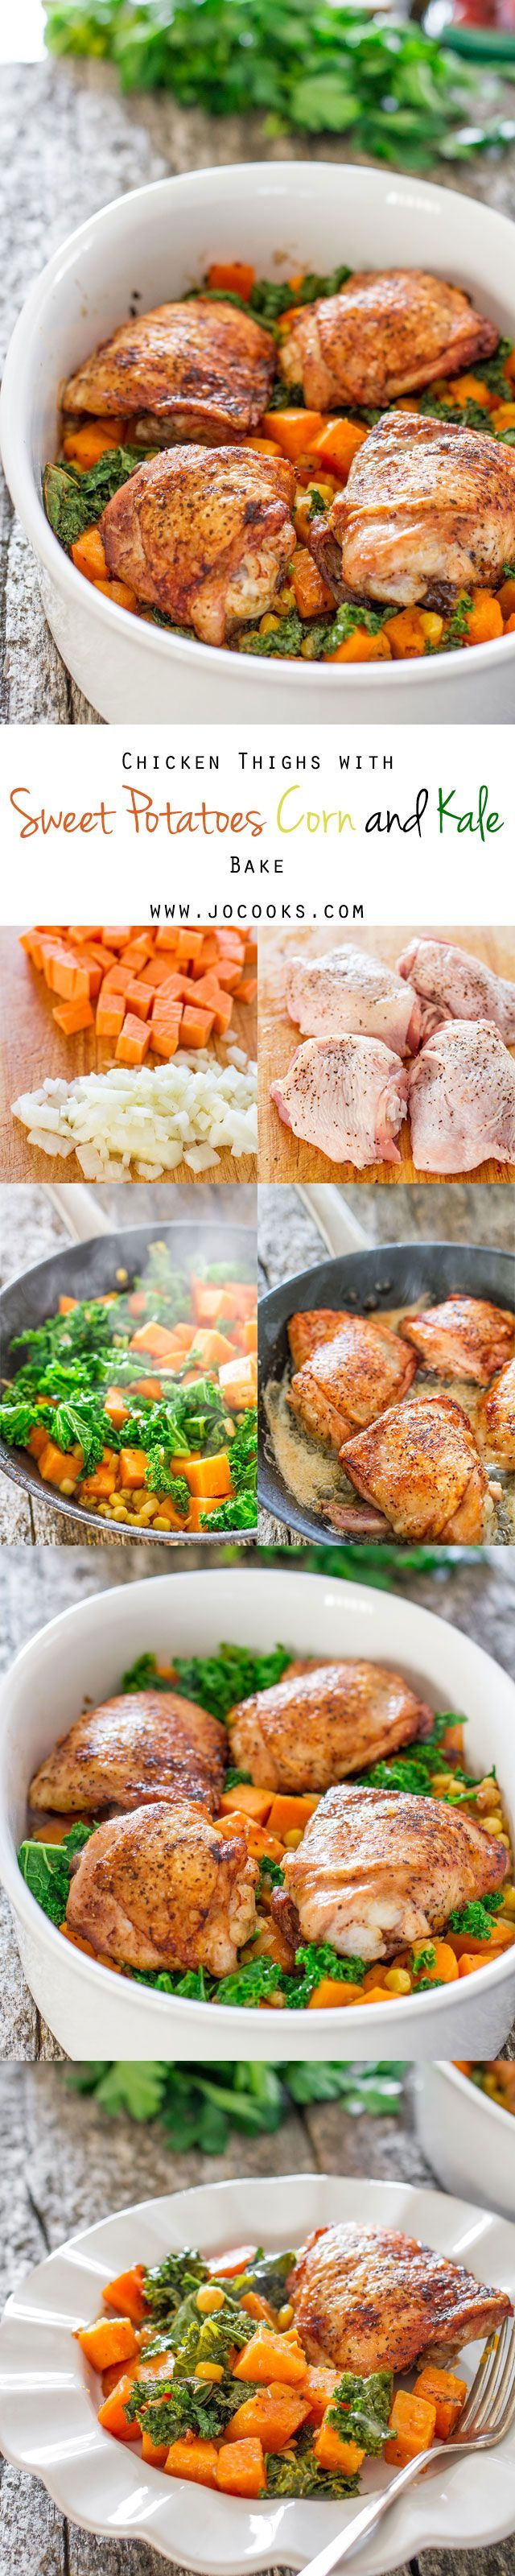 Chicken Thighs with Sweet Potatoes Corn and Kale Bake - a delicious Sunday night dinner. but simple enough to make on any night of the week.